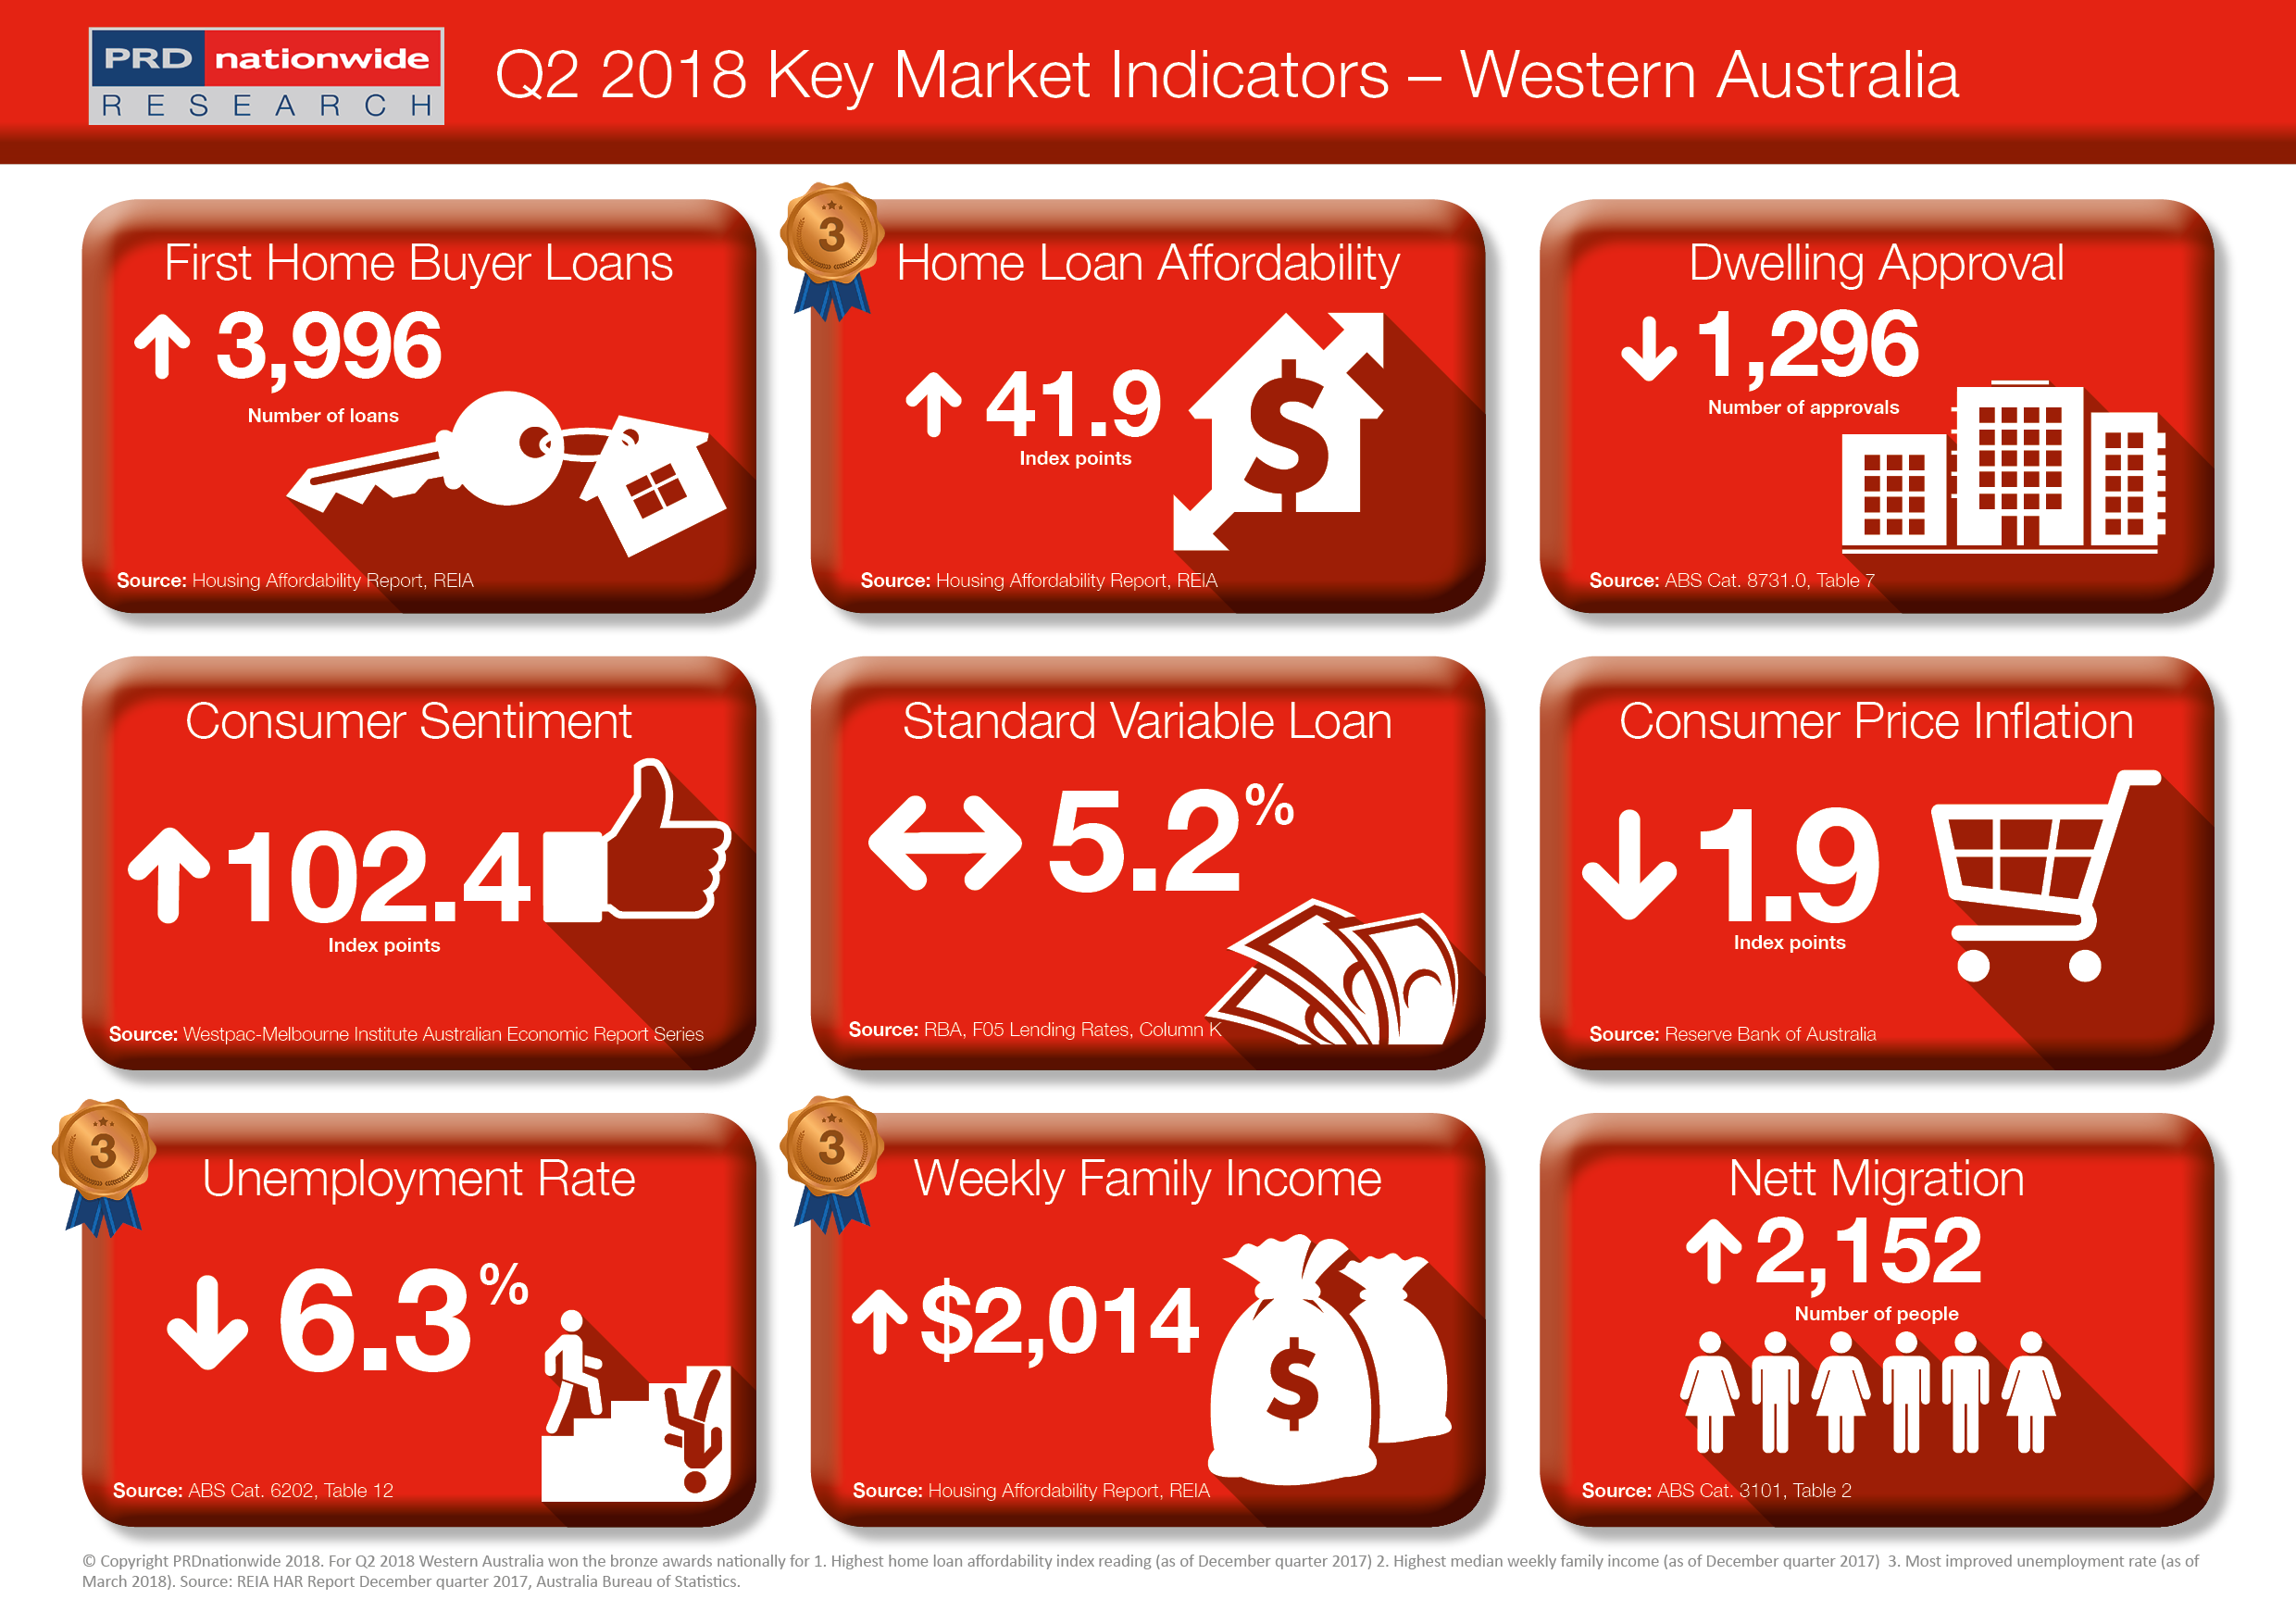 PRDnationwide Q2 Key Market Indicators 2018 - WA.png